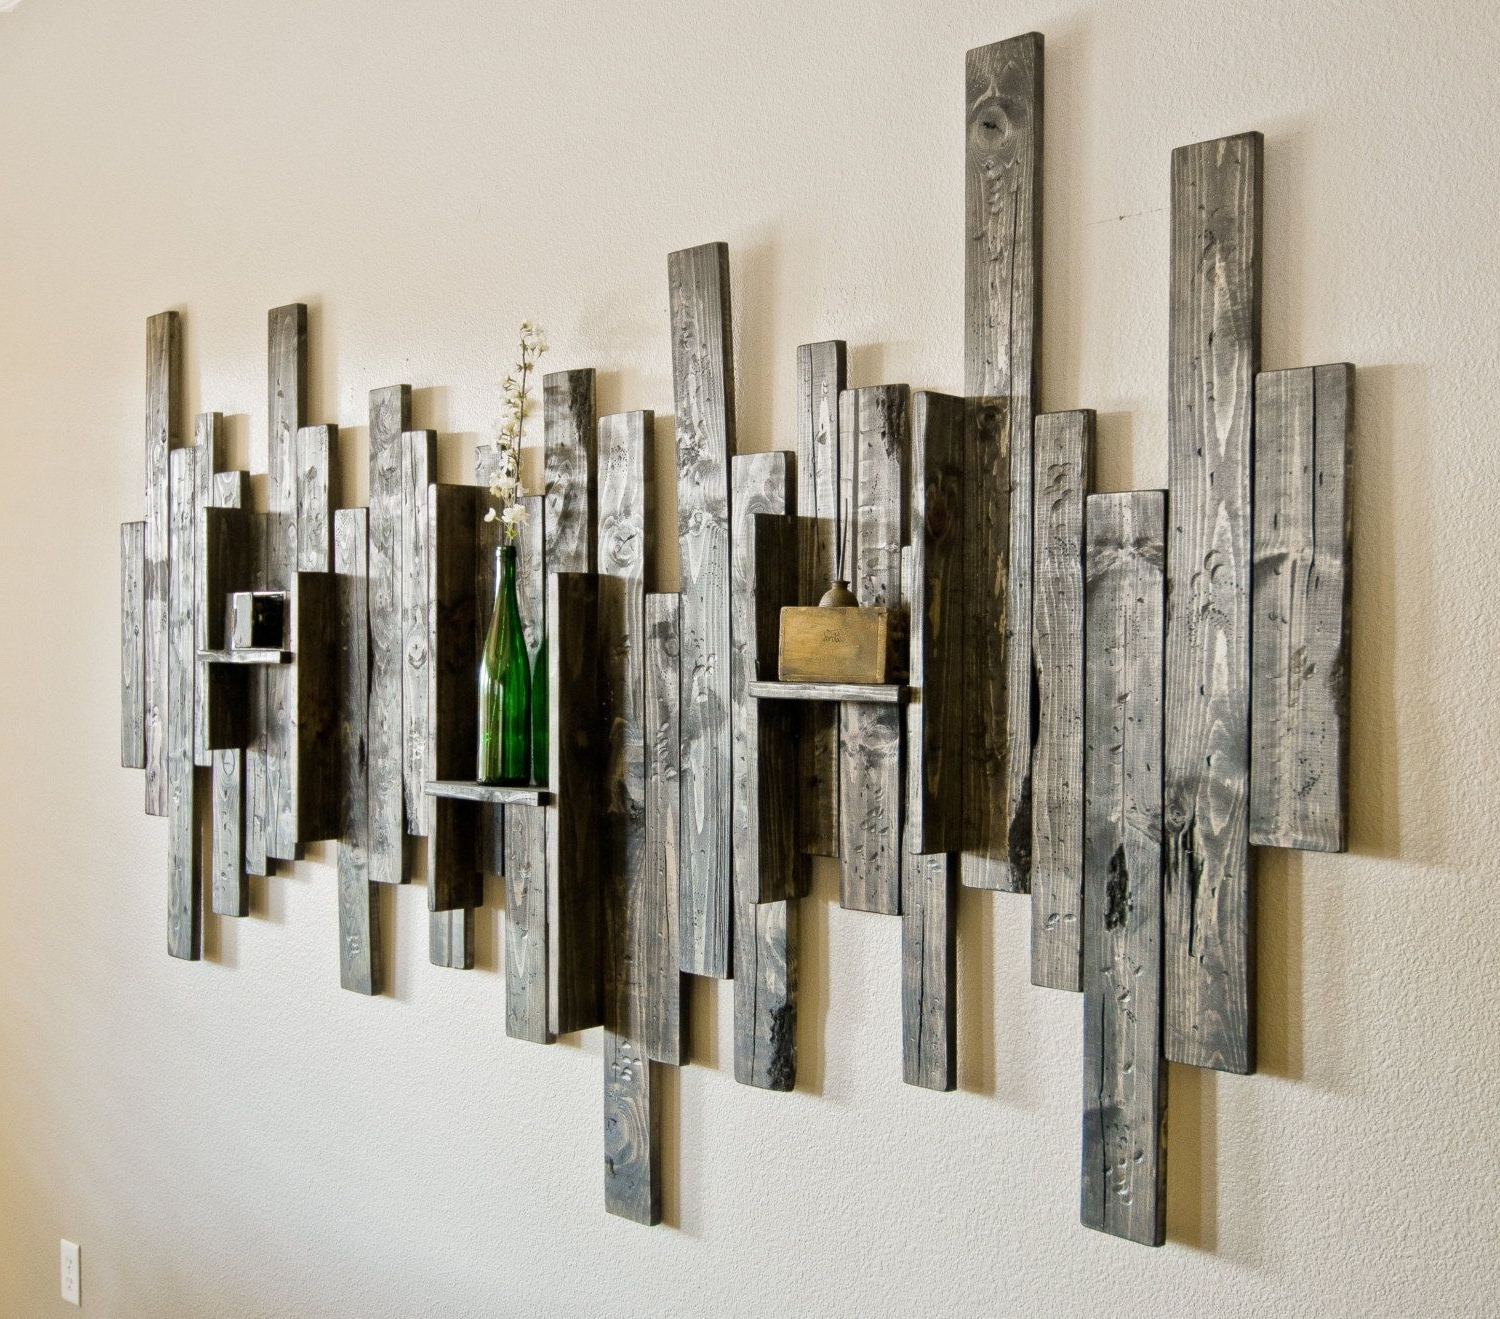 Most Recently Released Rustic Wall Art With Regard To 20+ Rustic Wall Decor Ideas To Help You Add Rustic Beauty To Your (View 3 of 15)